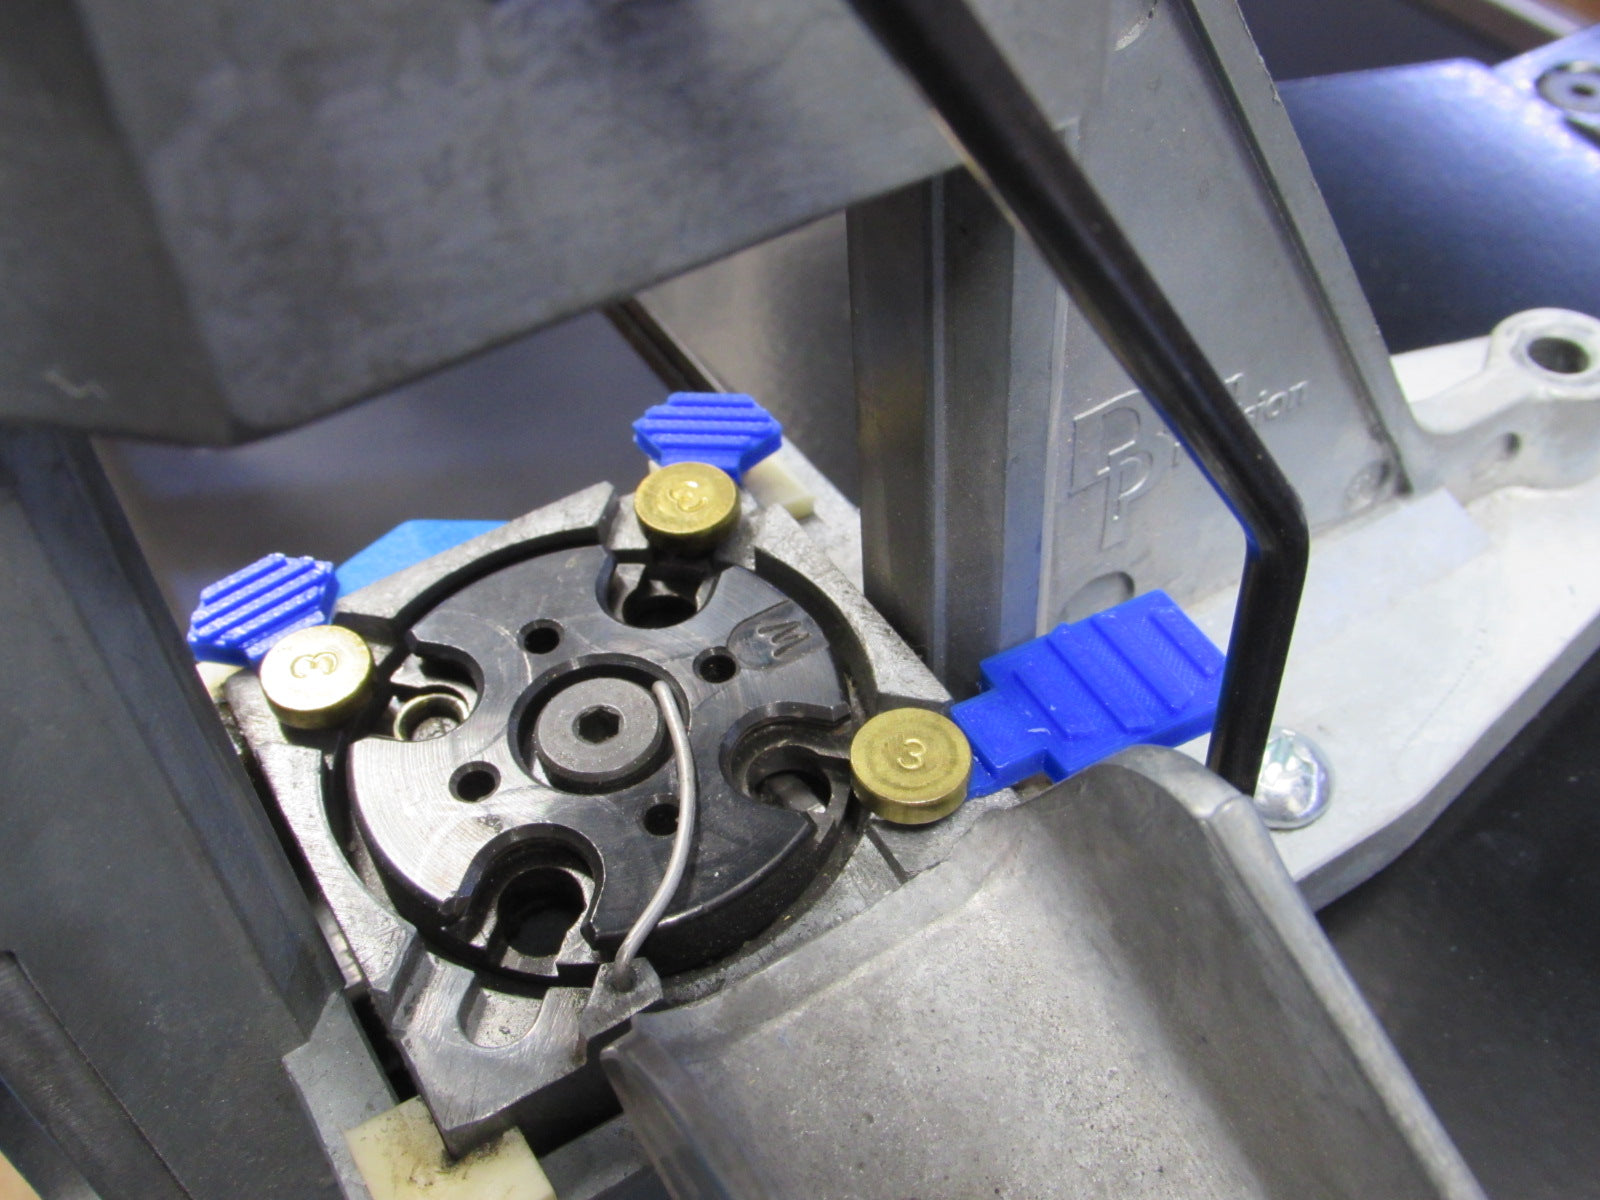 Locator pin tabs for Dillon Square deal press - Inline Fabrication